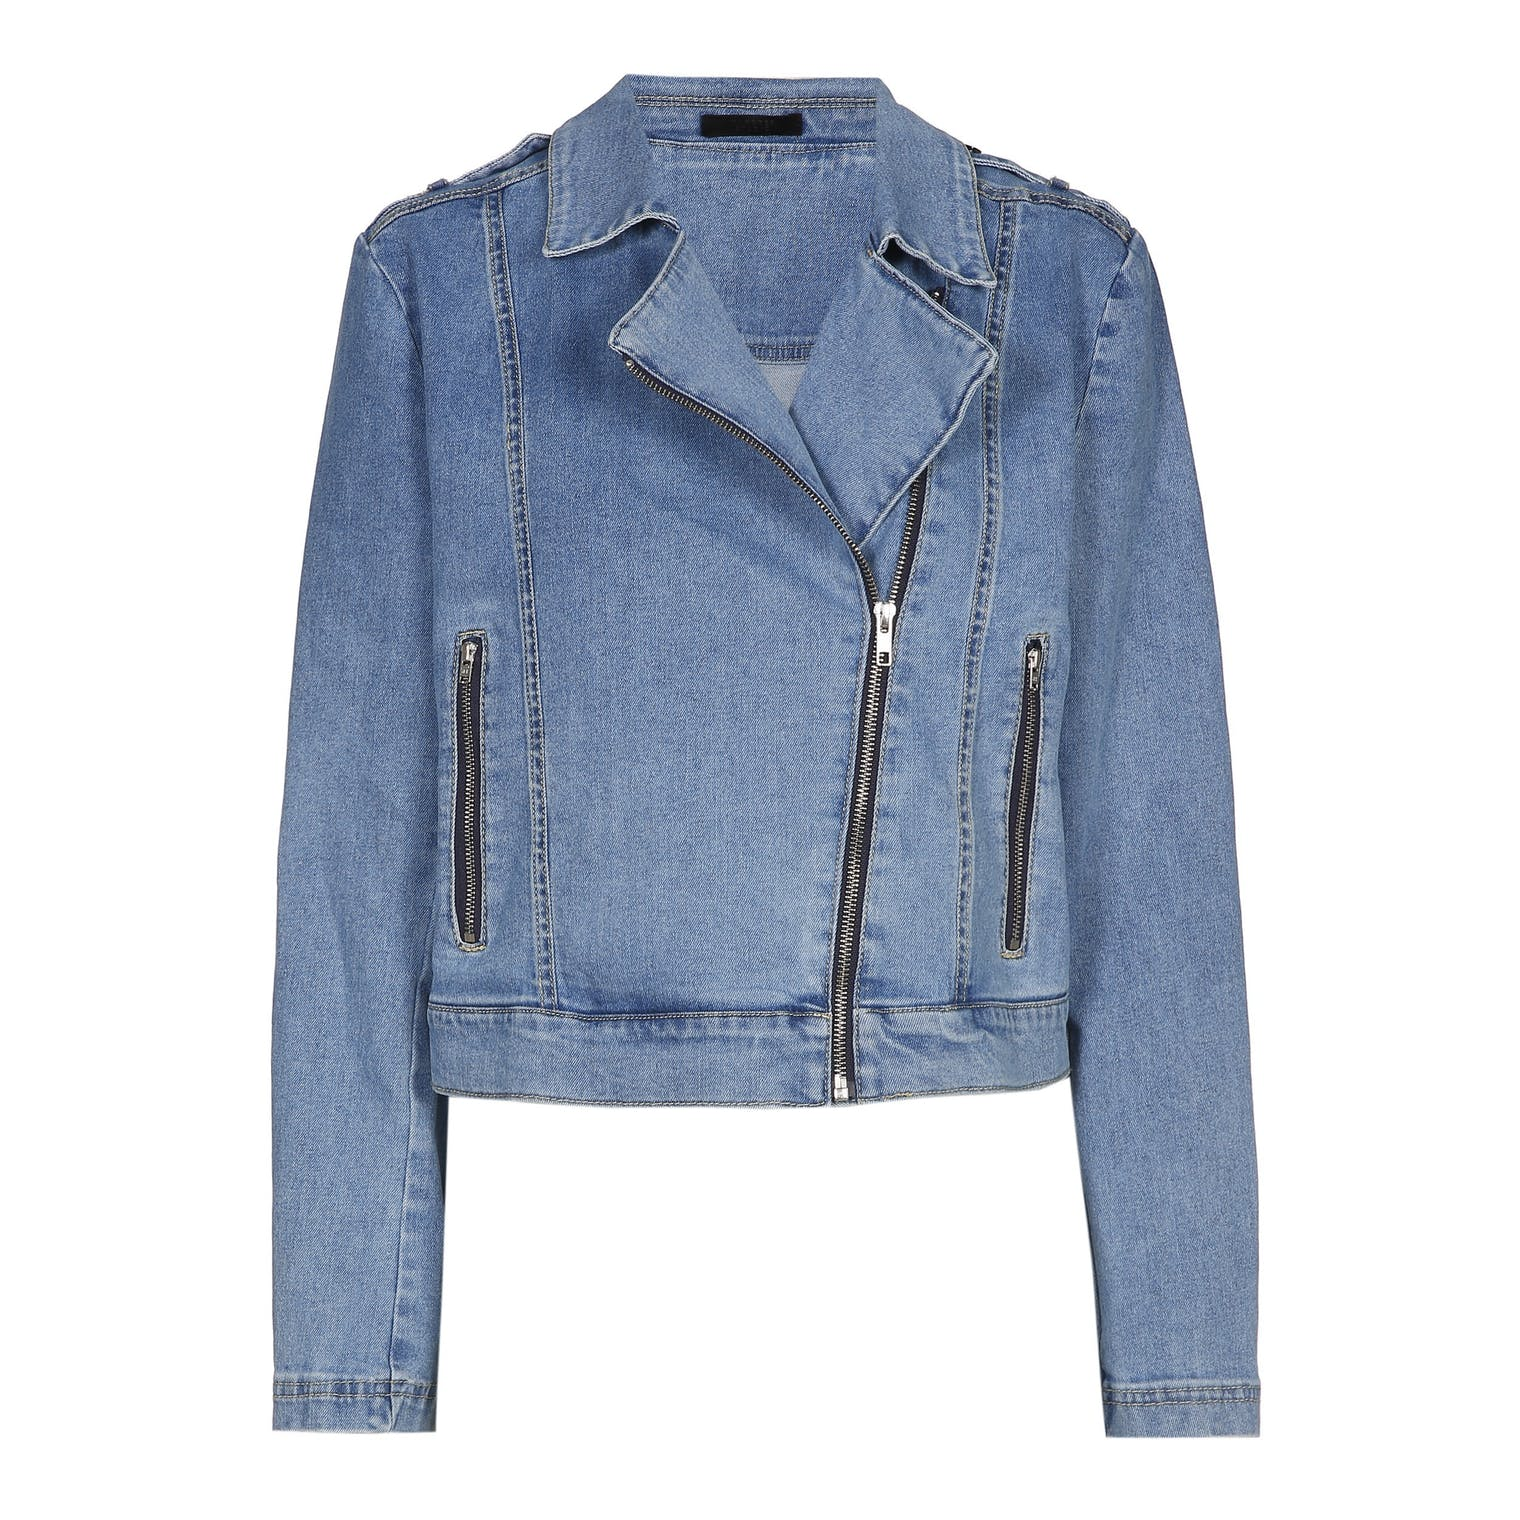 Xandres studio - iliva light blue denim biker jacket